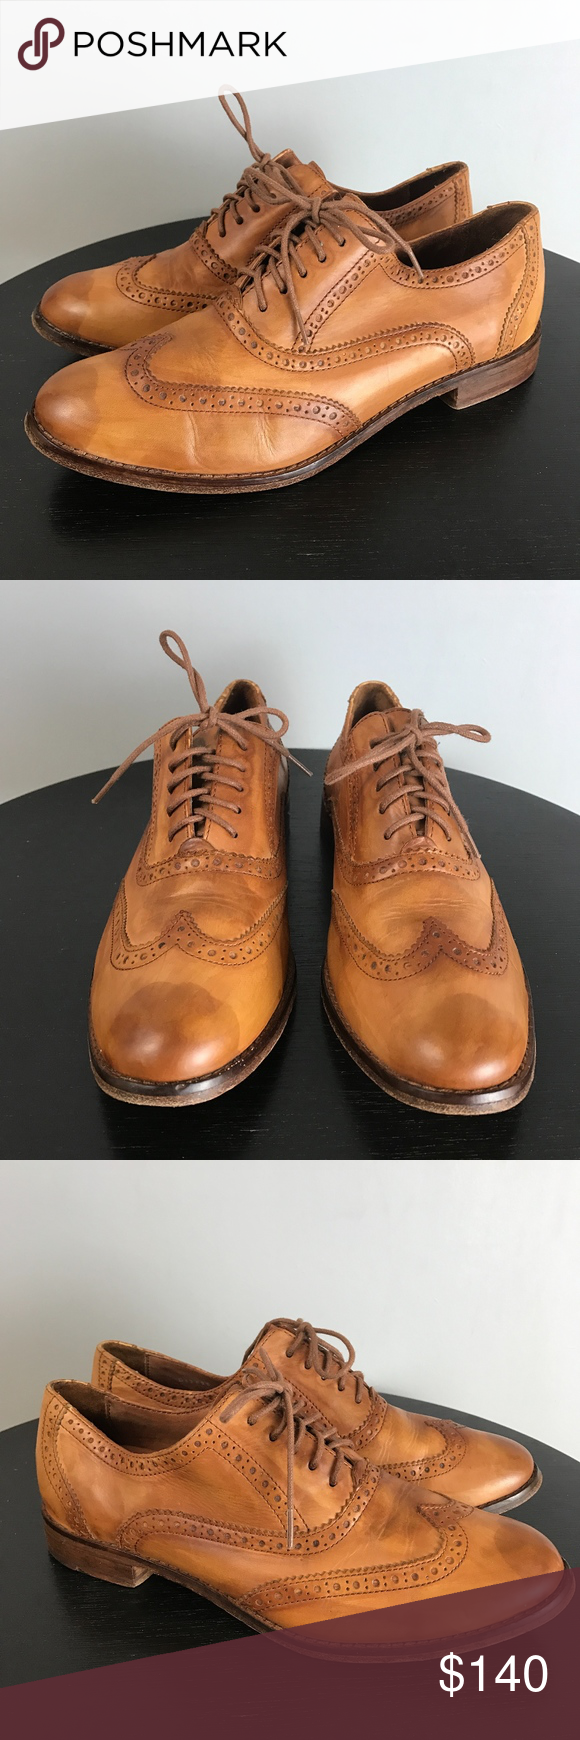 COLE HAAN Antique Leather Oxford Brogues Size: 7B Classic and iconic Cole  Haan. Chic, caramel antiqued leather. Closed Oxford lacing with perforated  Brogue ...